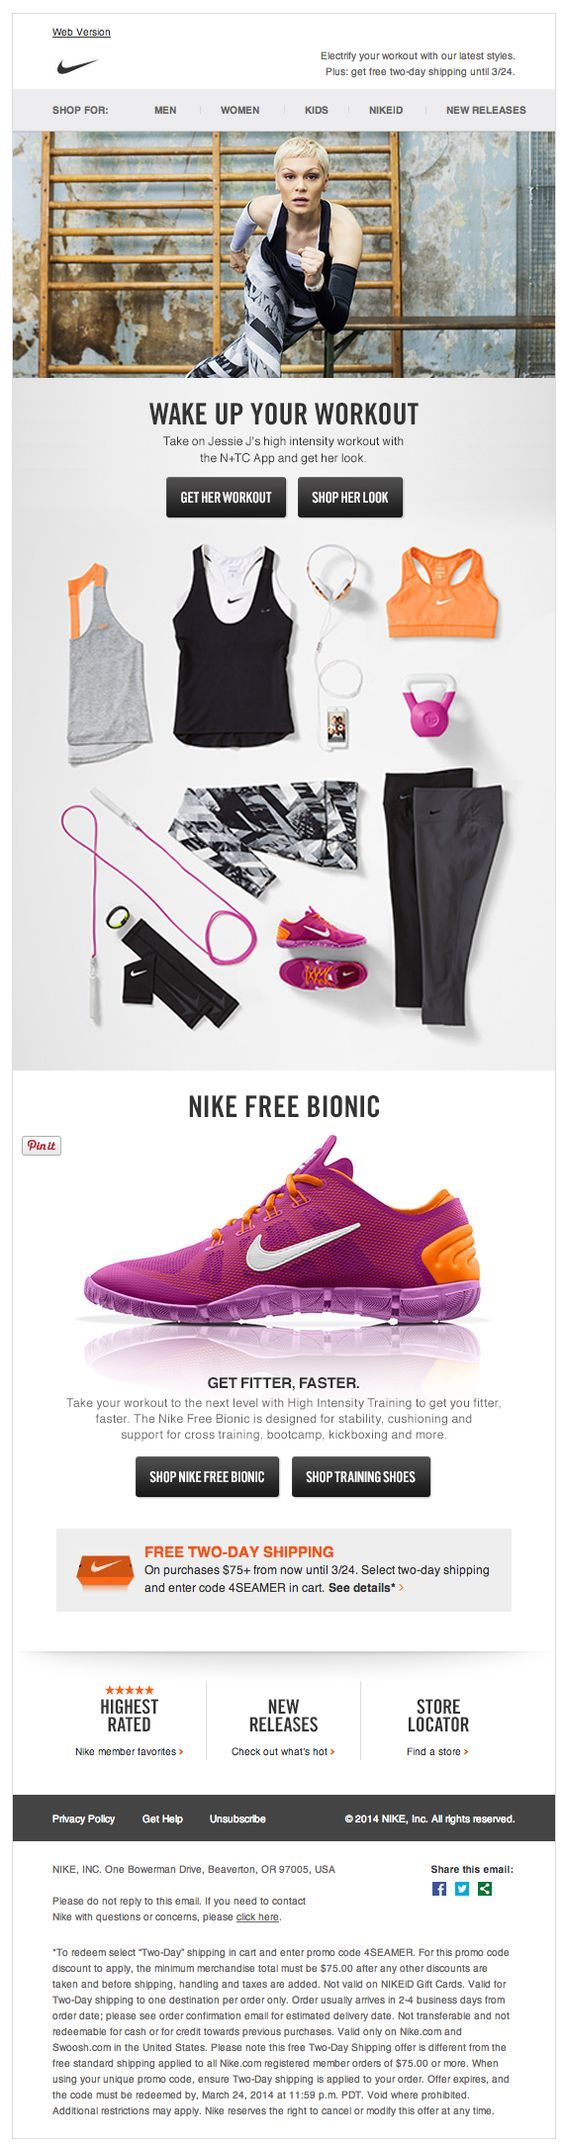 25 Examples of Sportswear Brands' Marketing Emails - MailBakery